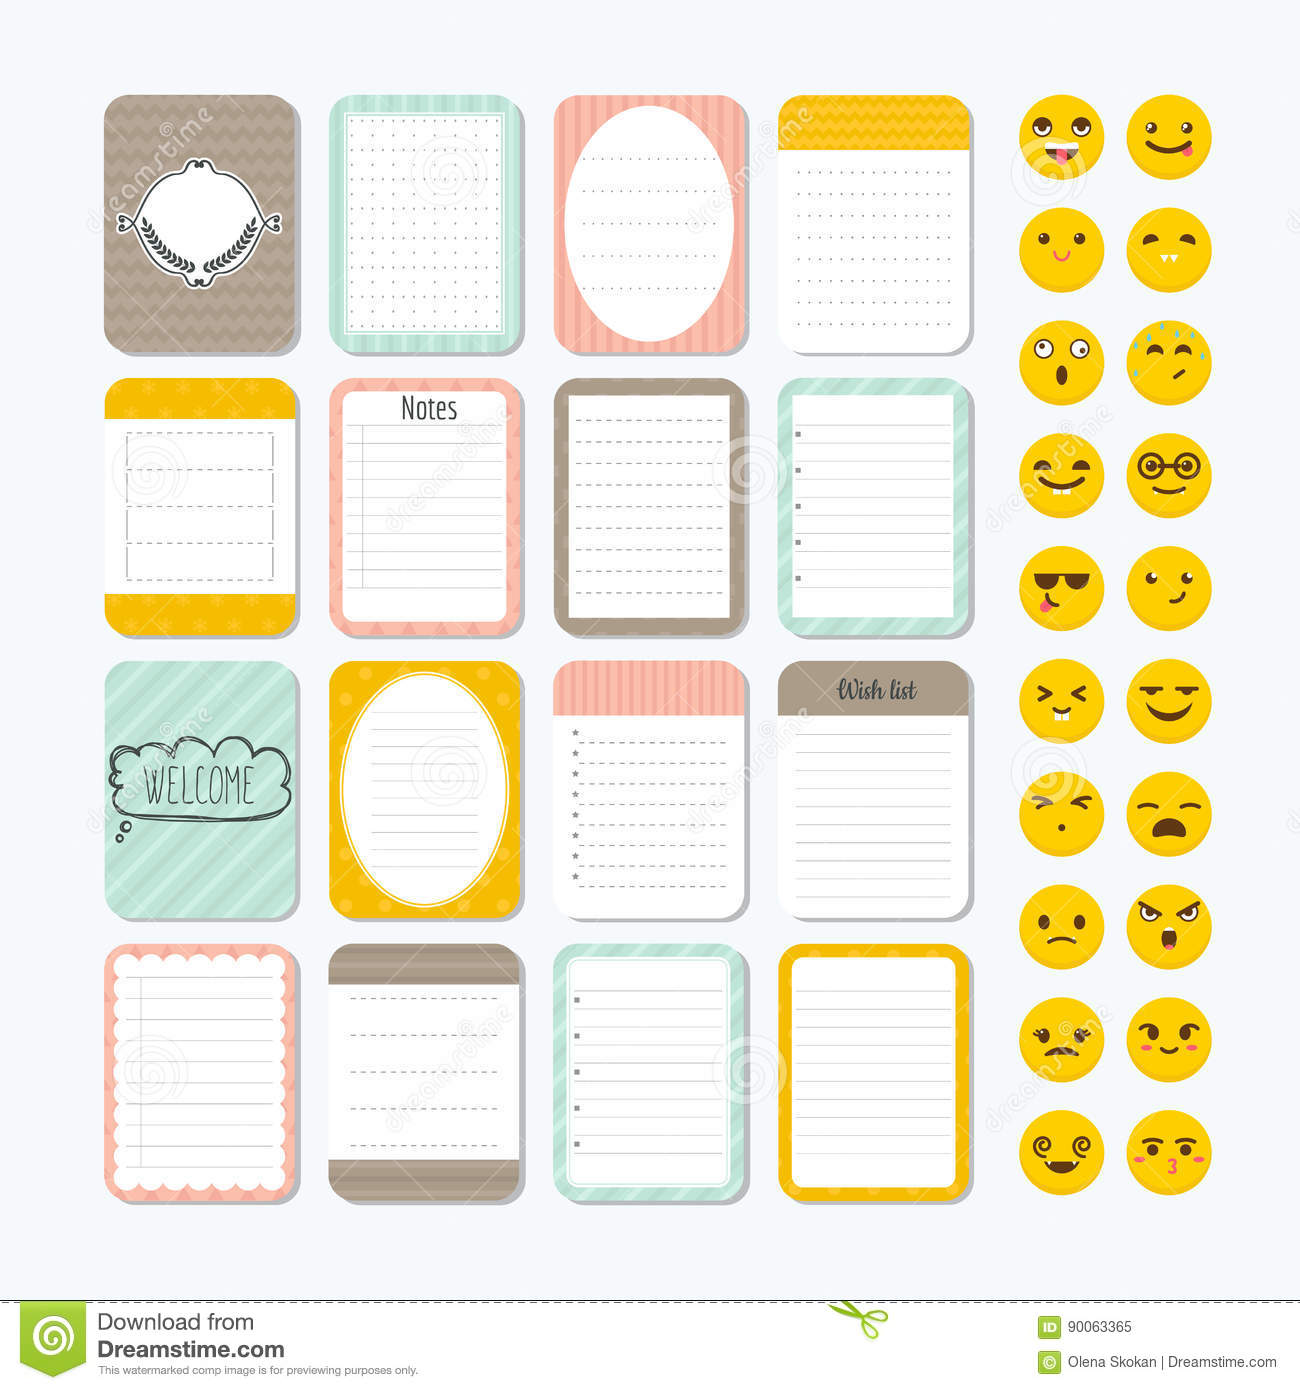 template for notebooks. cute design elements. notes, labels stock